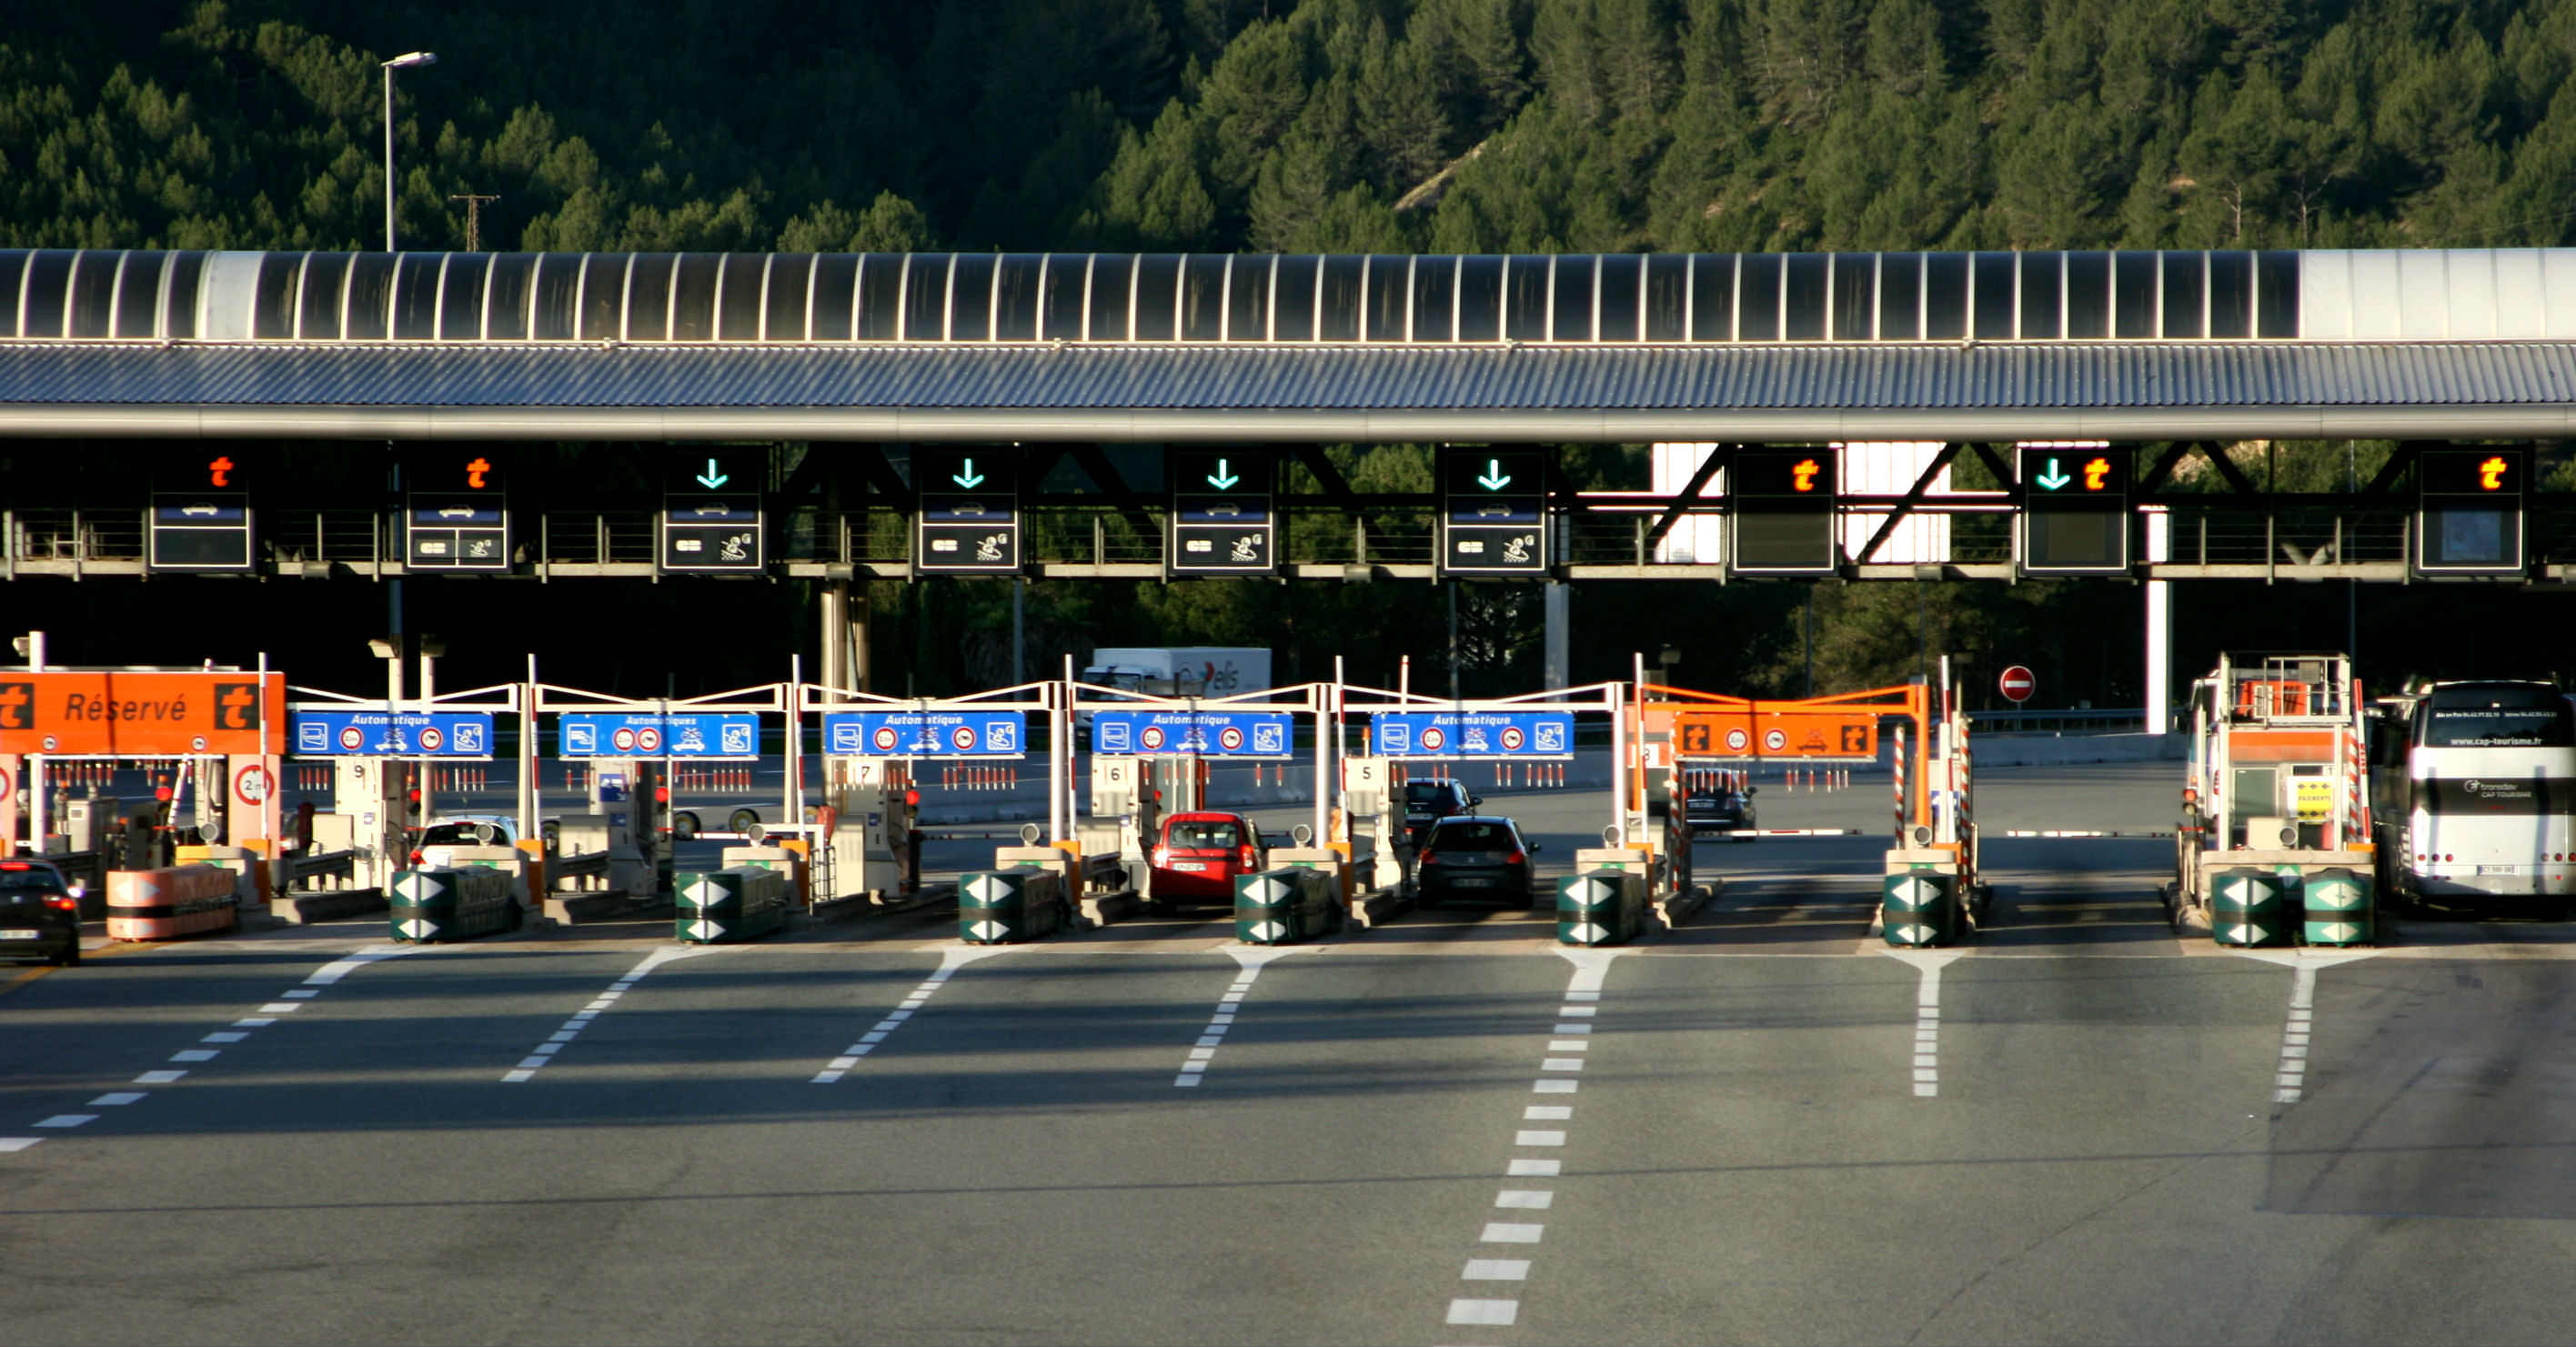 Driving trip to France - toll booth